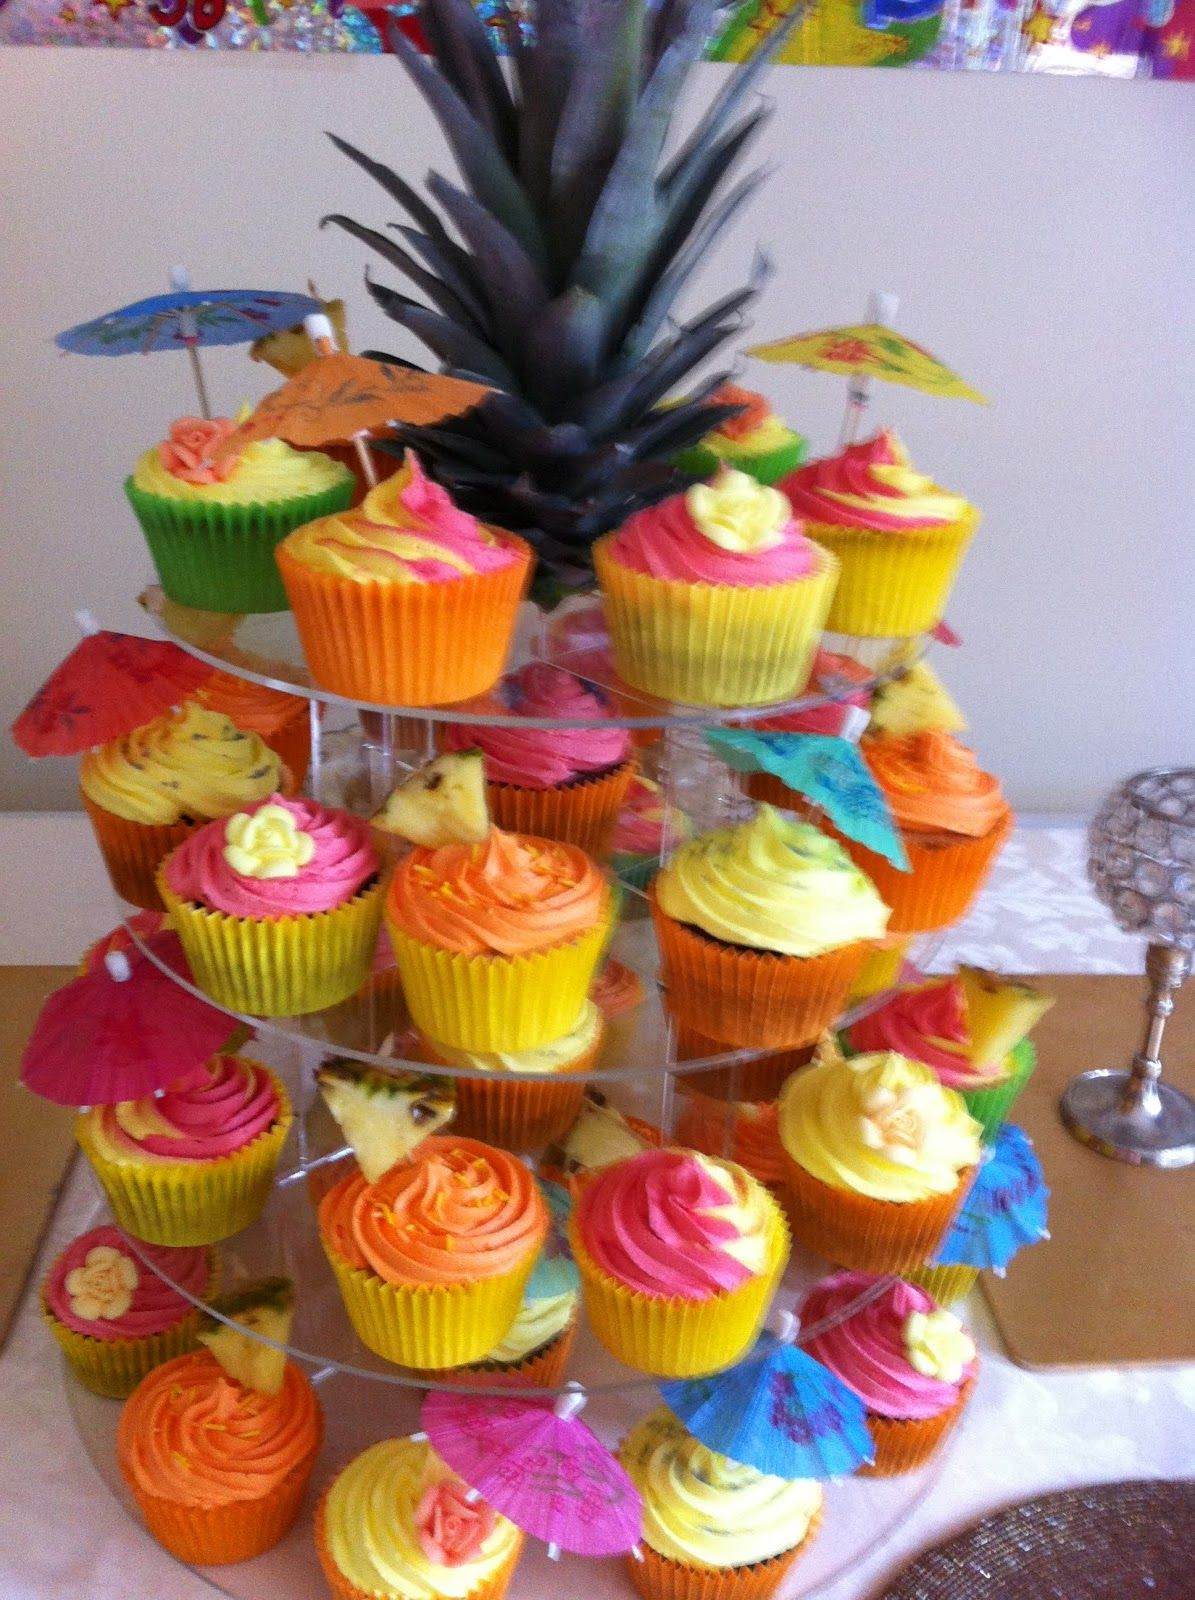 I Wonder If The Cupcakes My Sister Is Making Turn Out Like